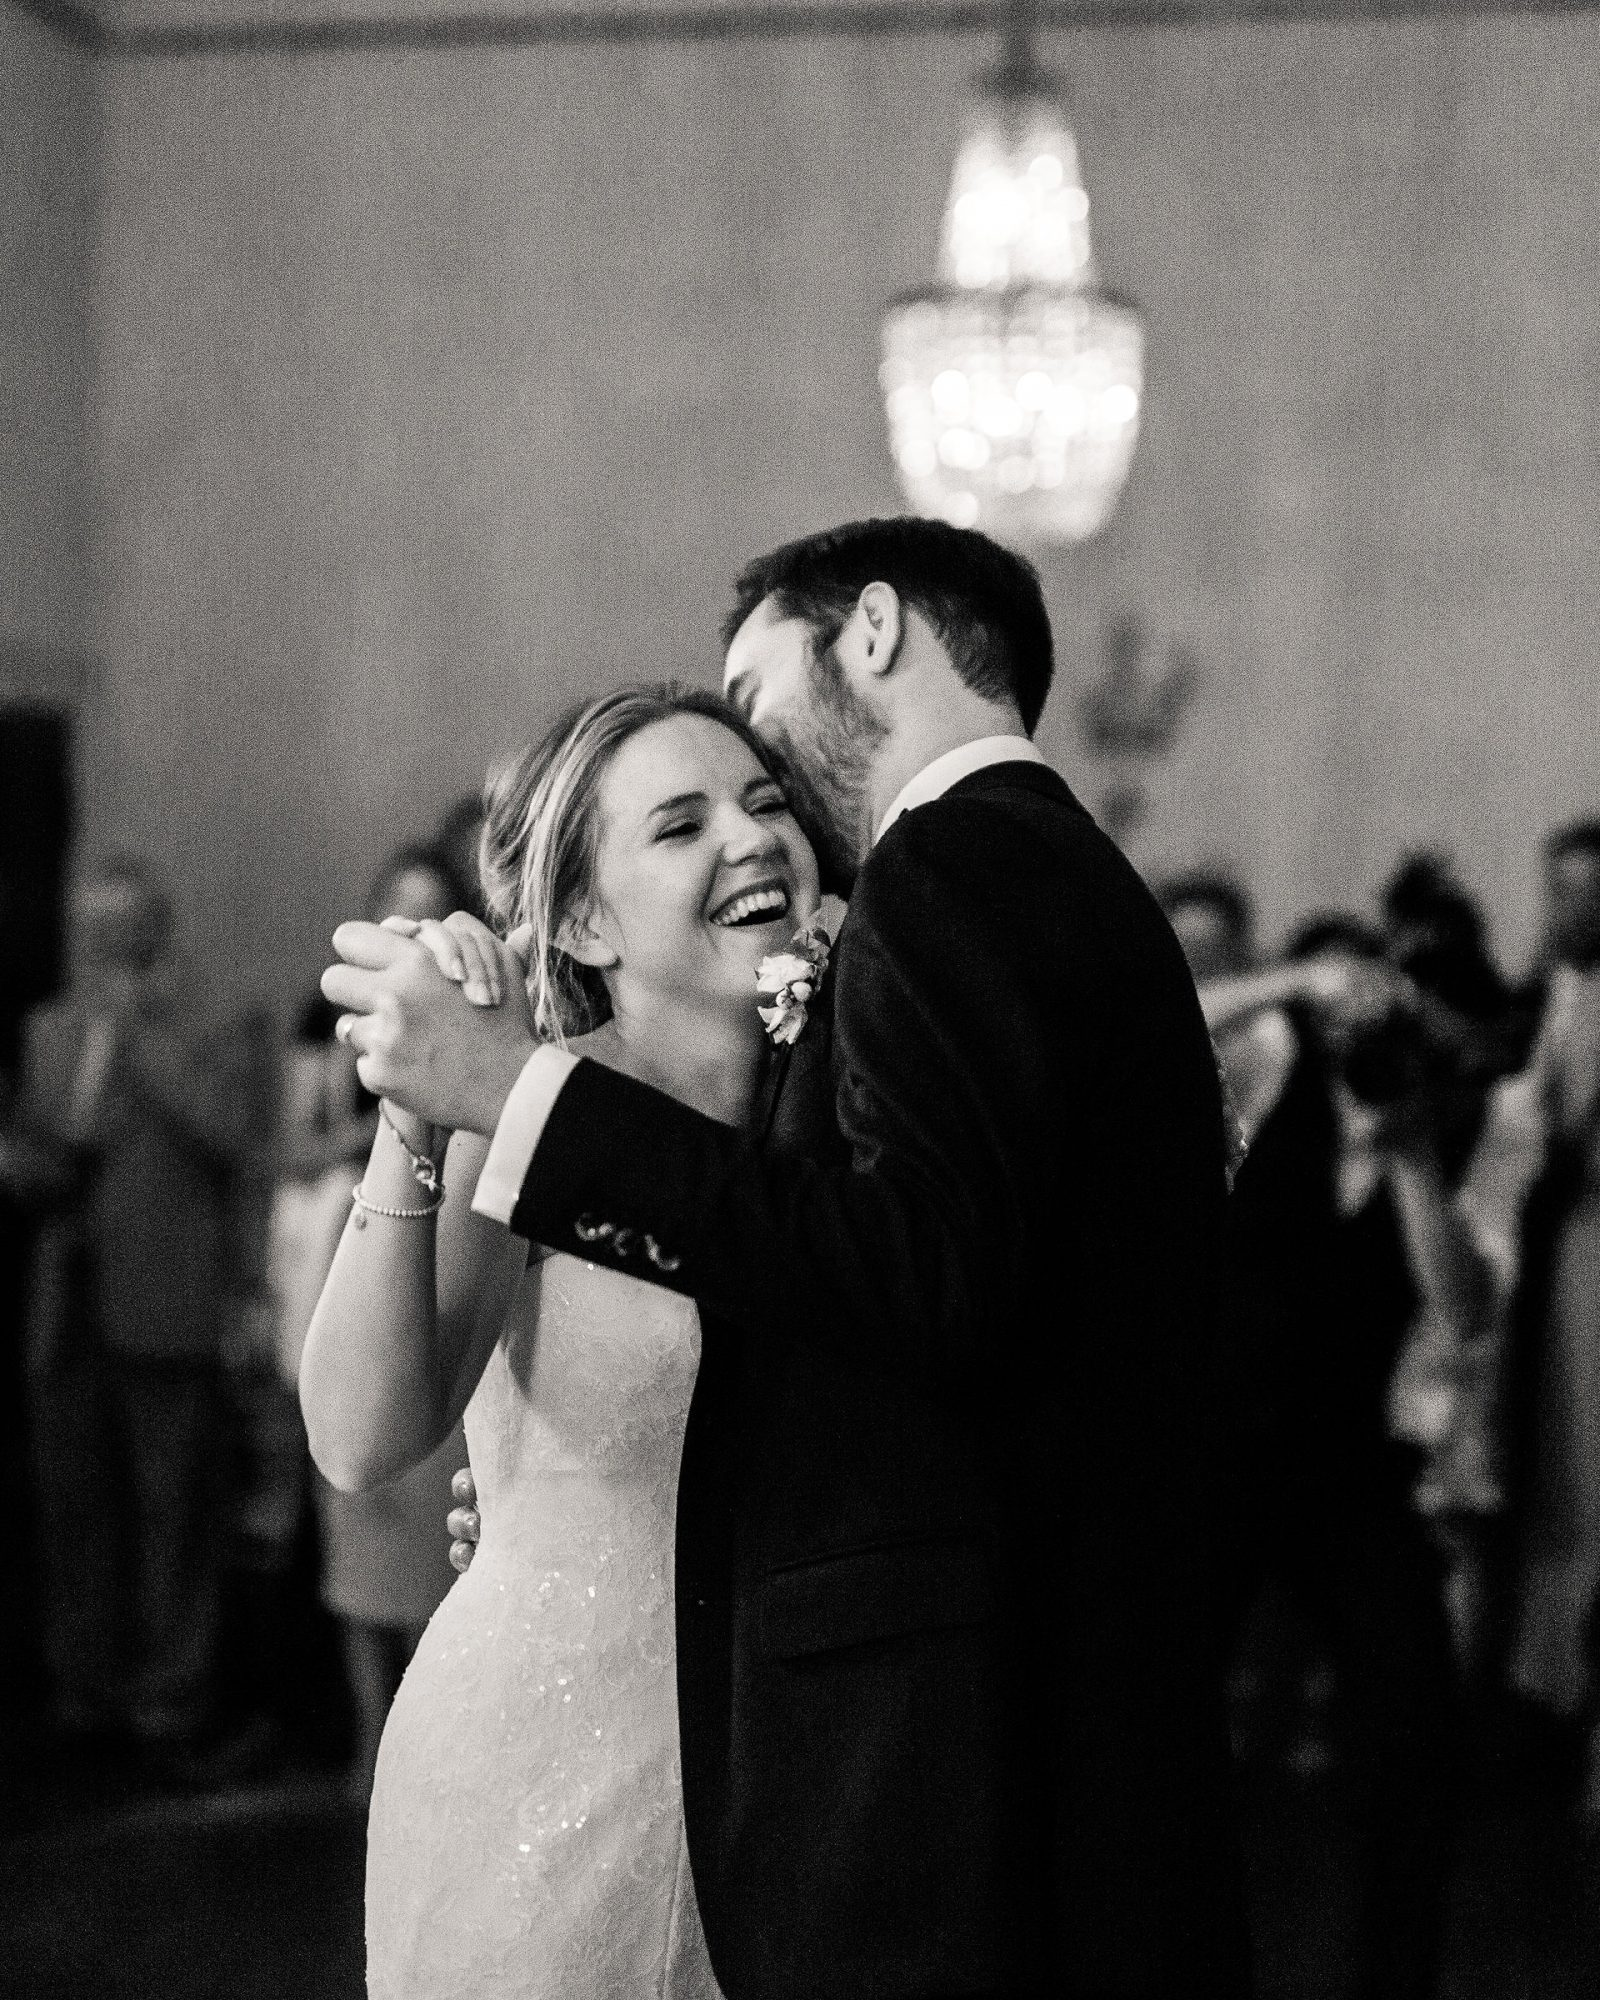 sophie christopher wedding couple first dance in black and white